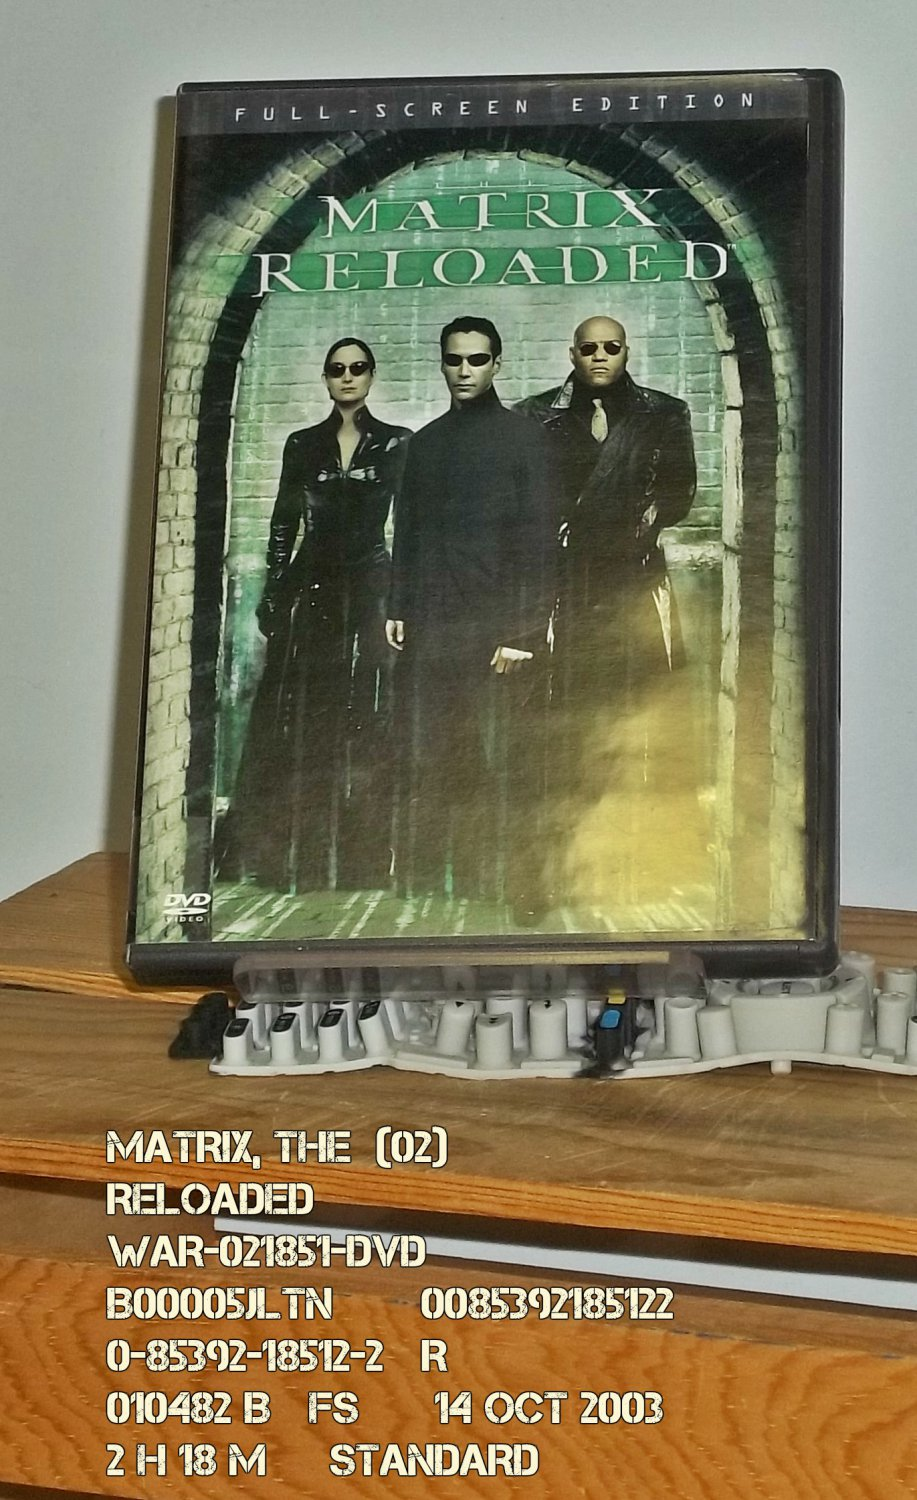 DVD - MATRIX, THE  (02)  RELOADED